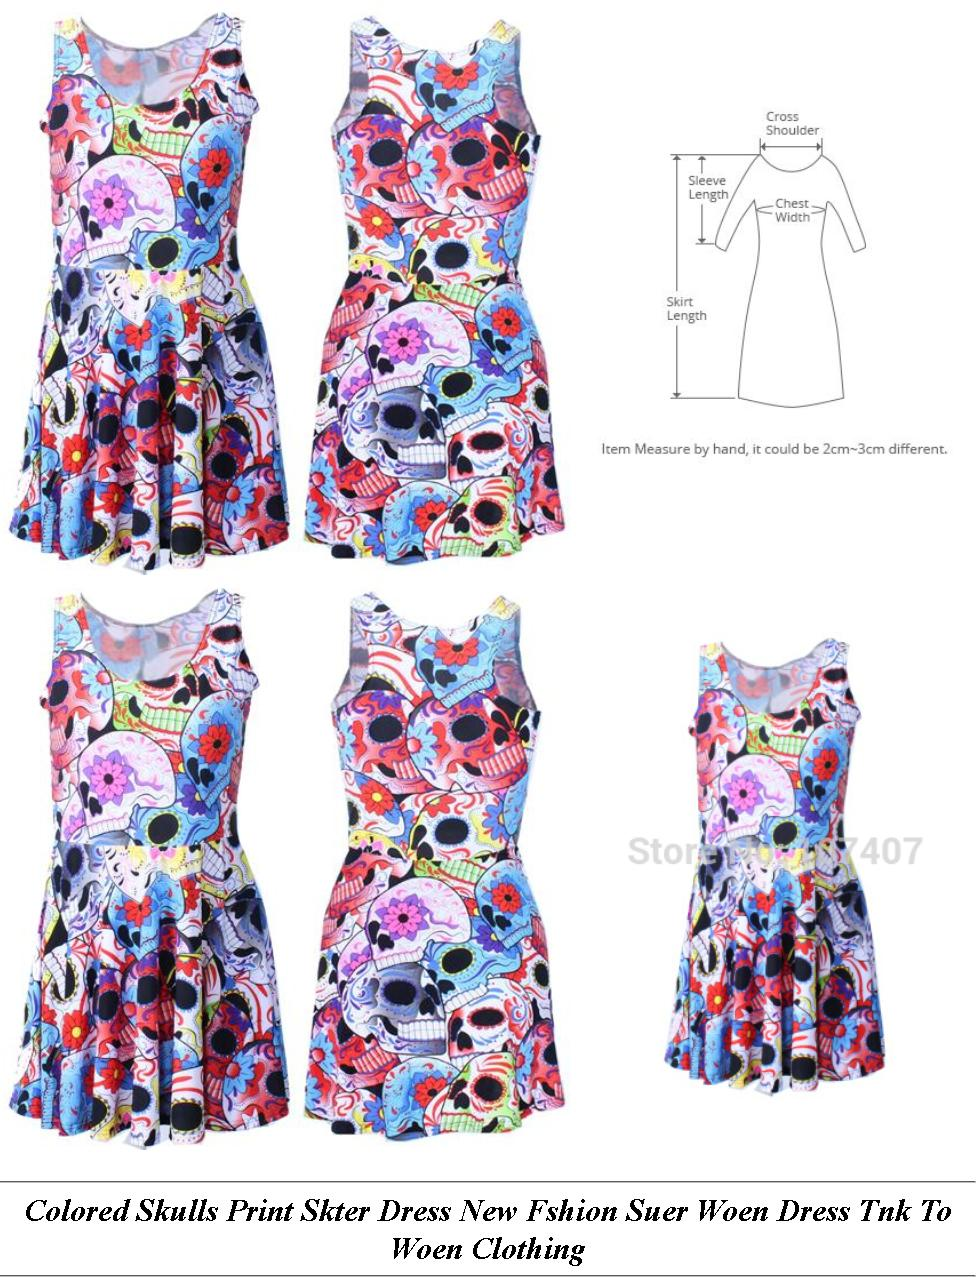 Womens Summer Dresses For Sale - Polo Shirt Clearance Sale - Long Sleeve Dresses Prom